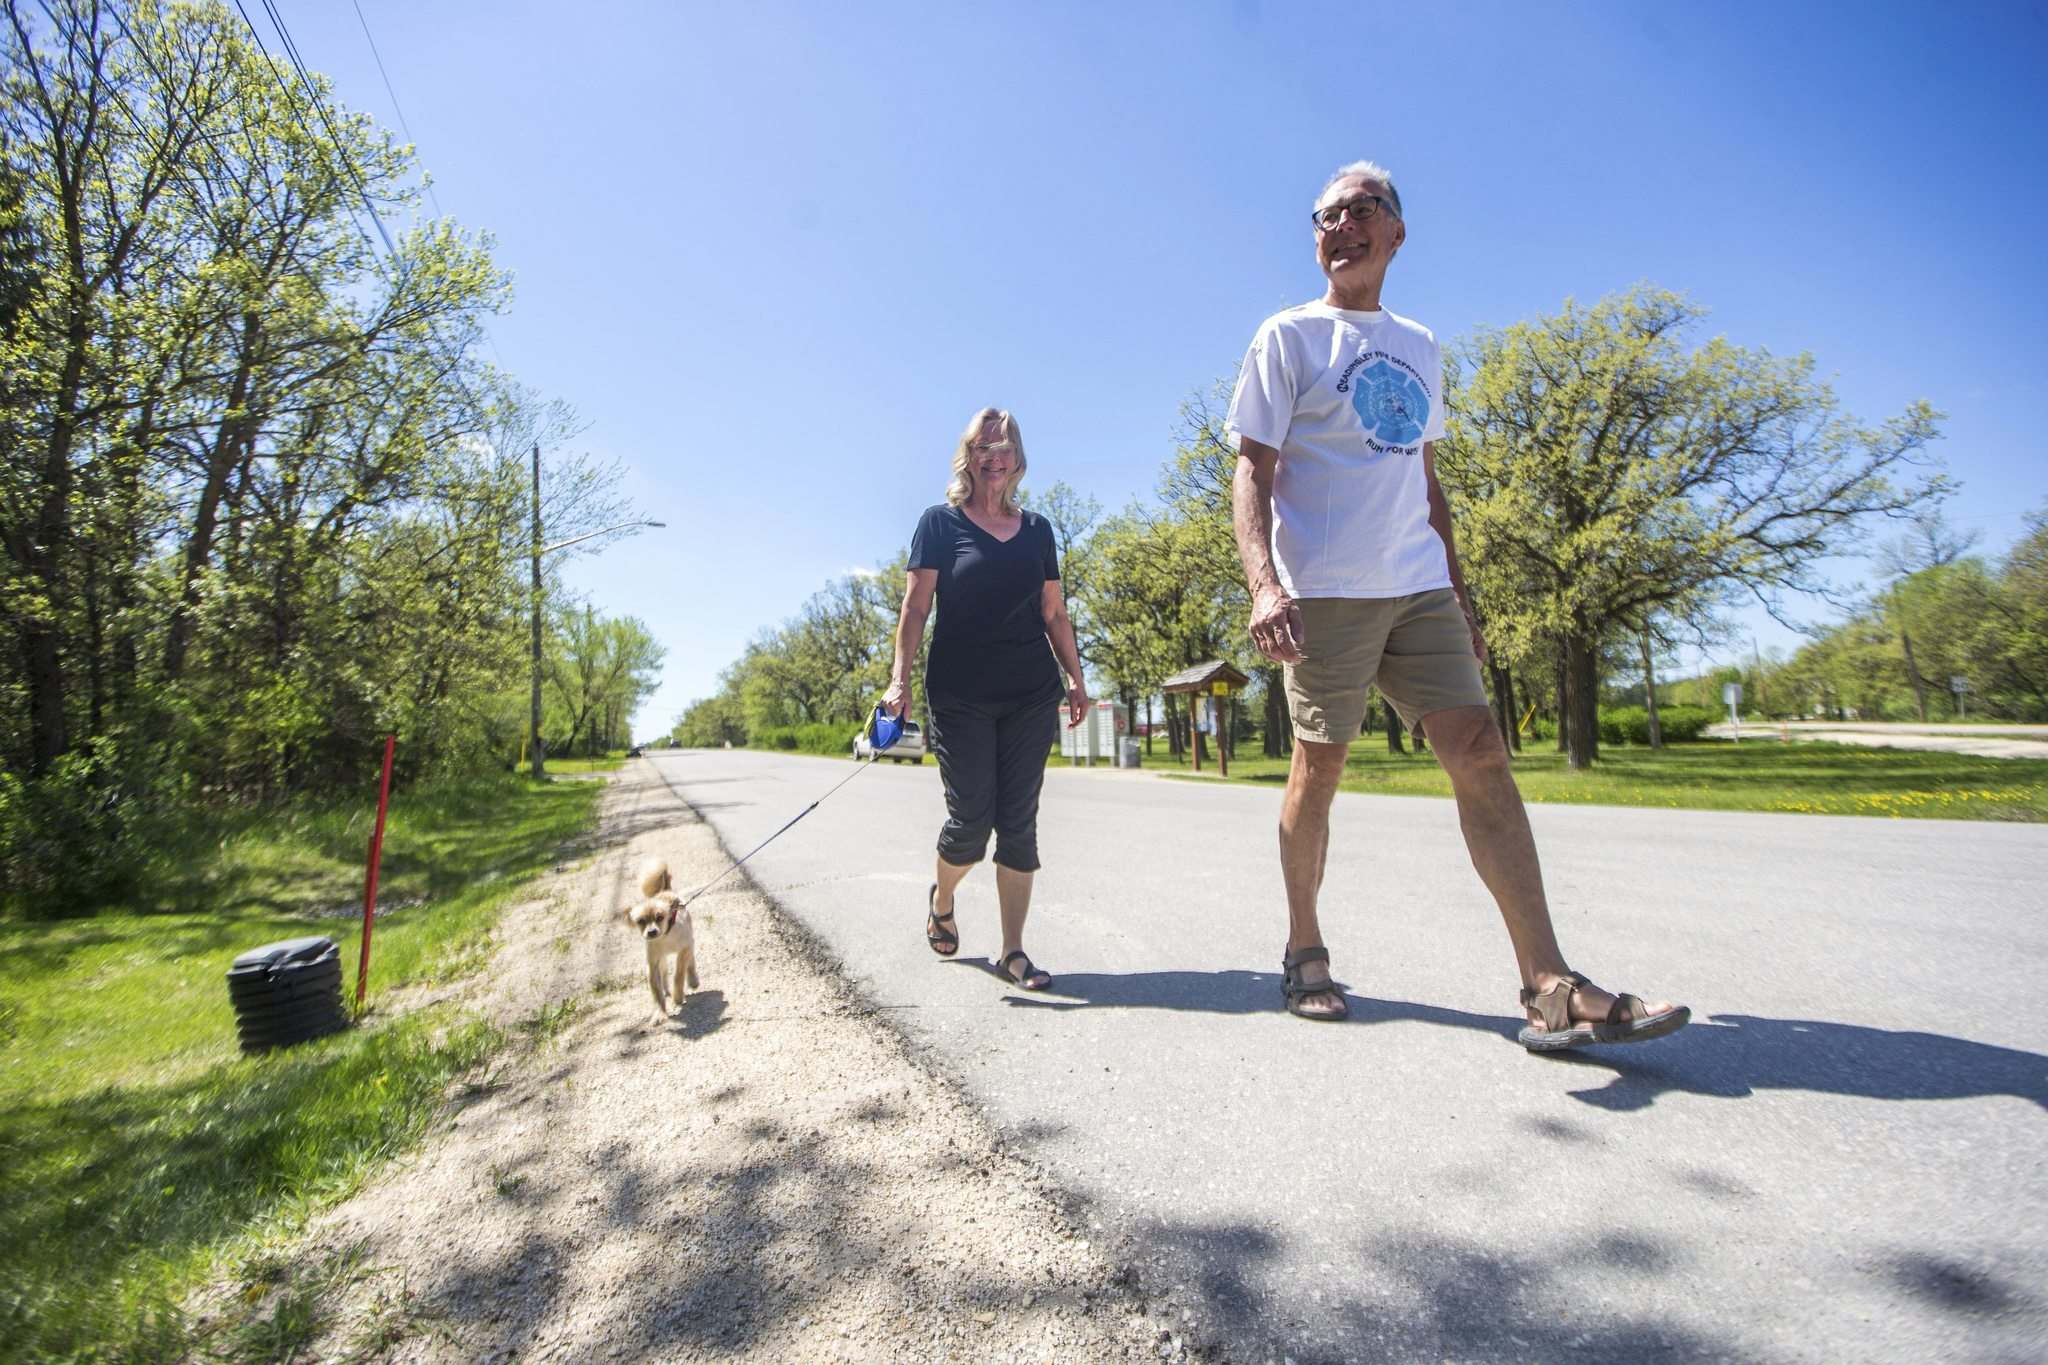 Glenn Reimer, deputy chief for emergency medical services in Headingley, with his wife, Joanne, has transitioned the Run for Wishes into a virtual event in the face of the pandemic. (Mikaela MacKenzie / Winnipeg Free Press)</p>